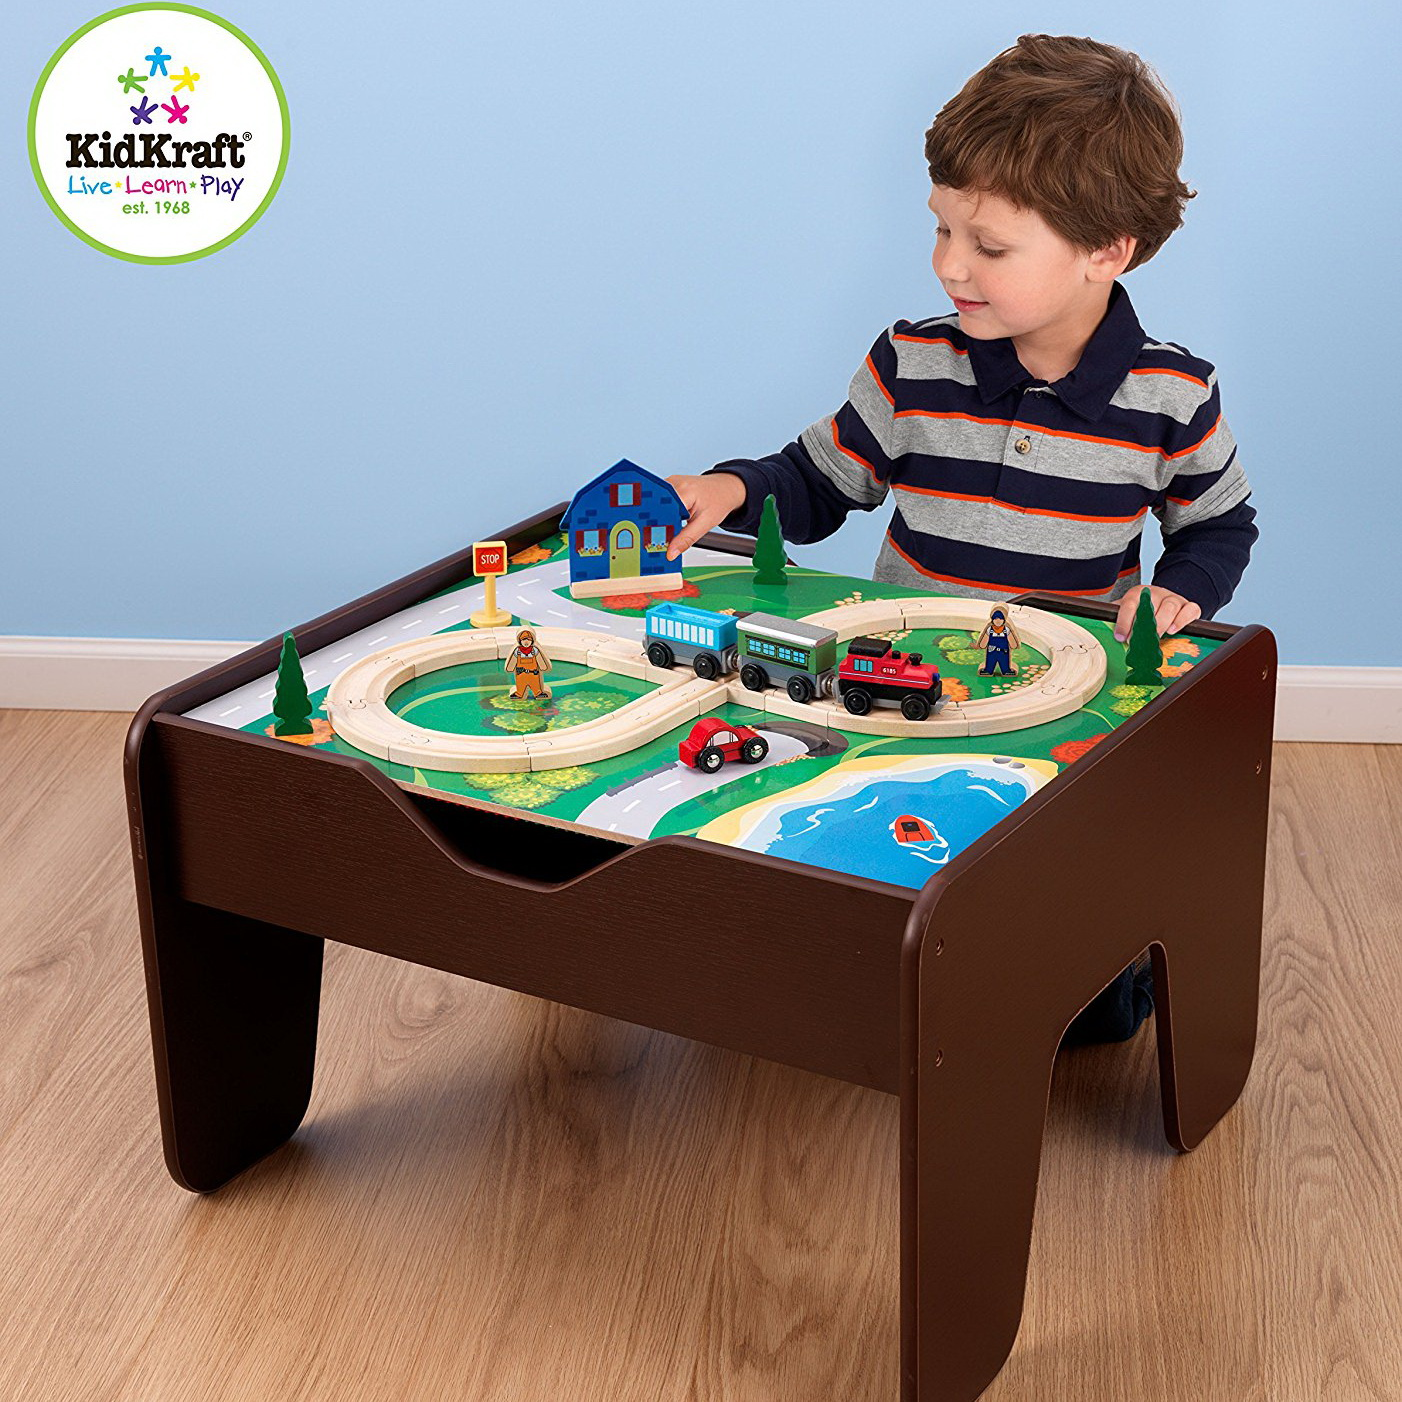 KidKraft 2 In 1 Activity Table With Board